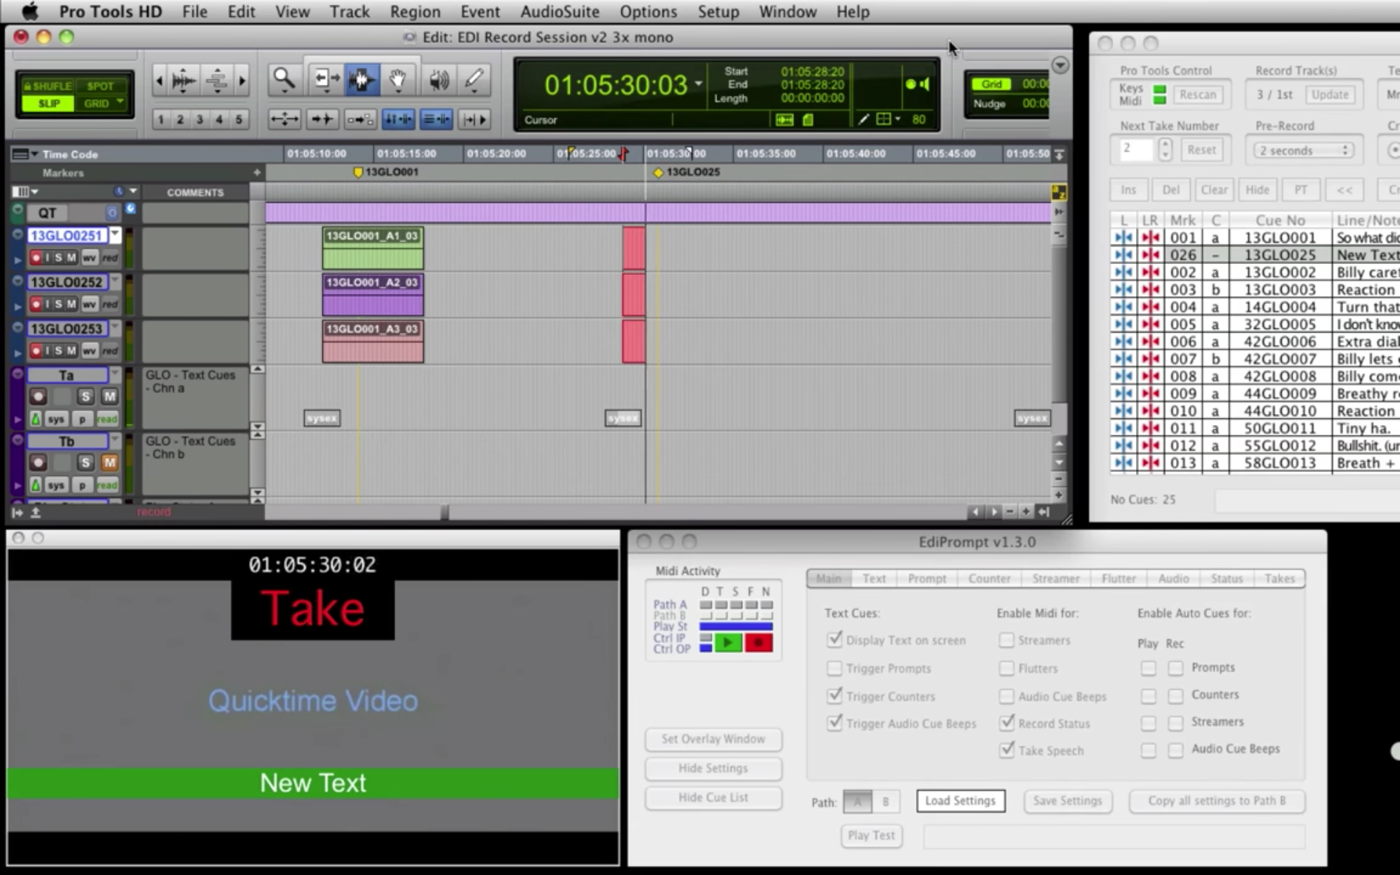 A Pro Tools session with ADR cues